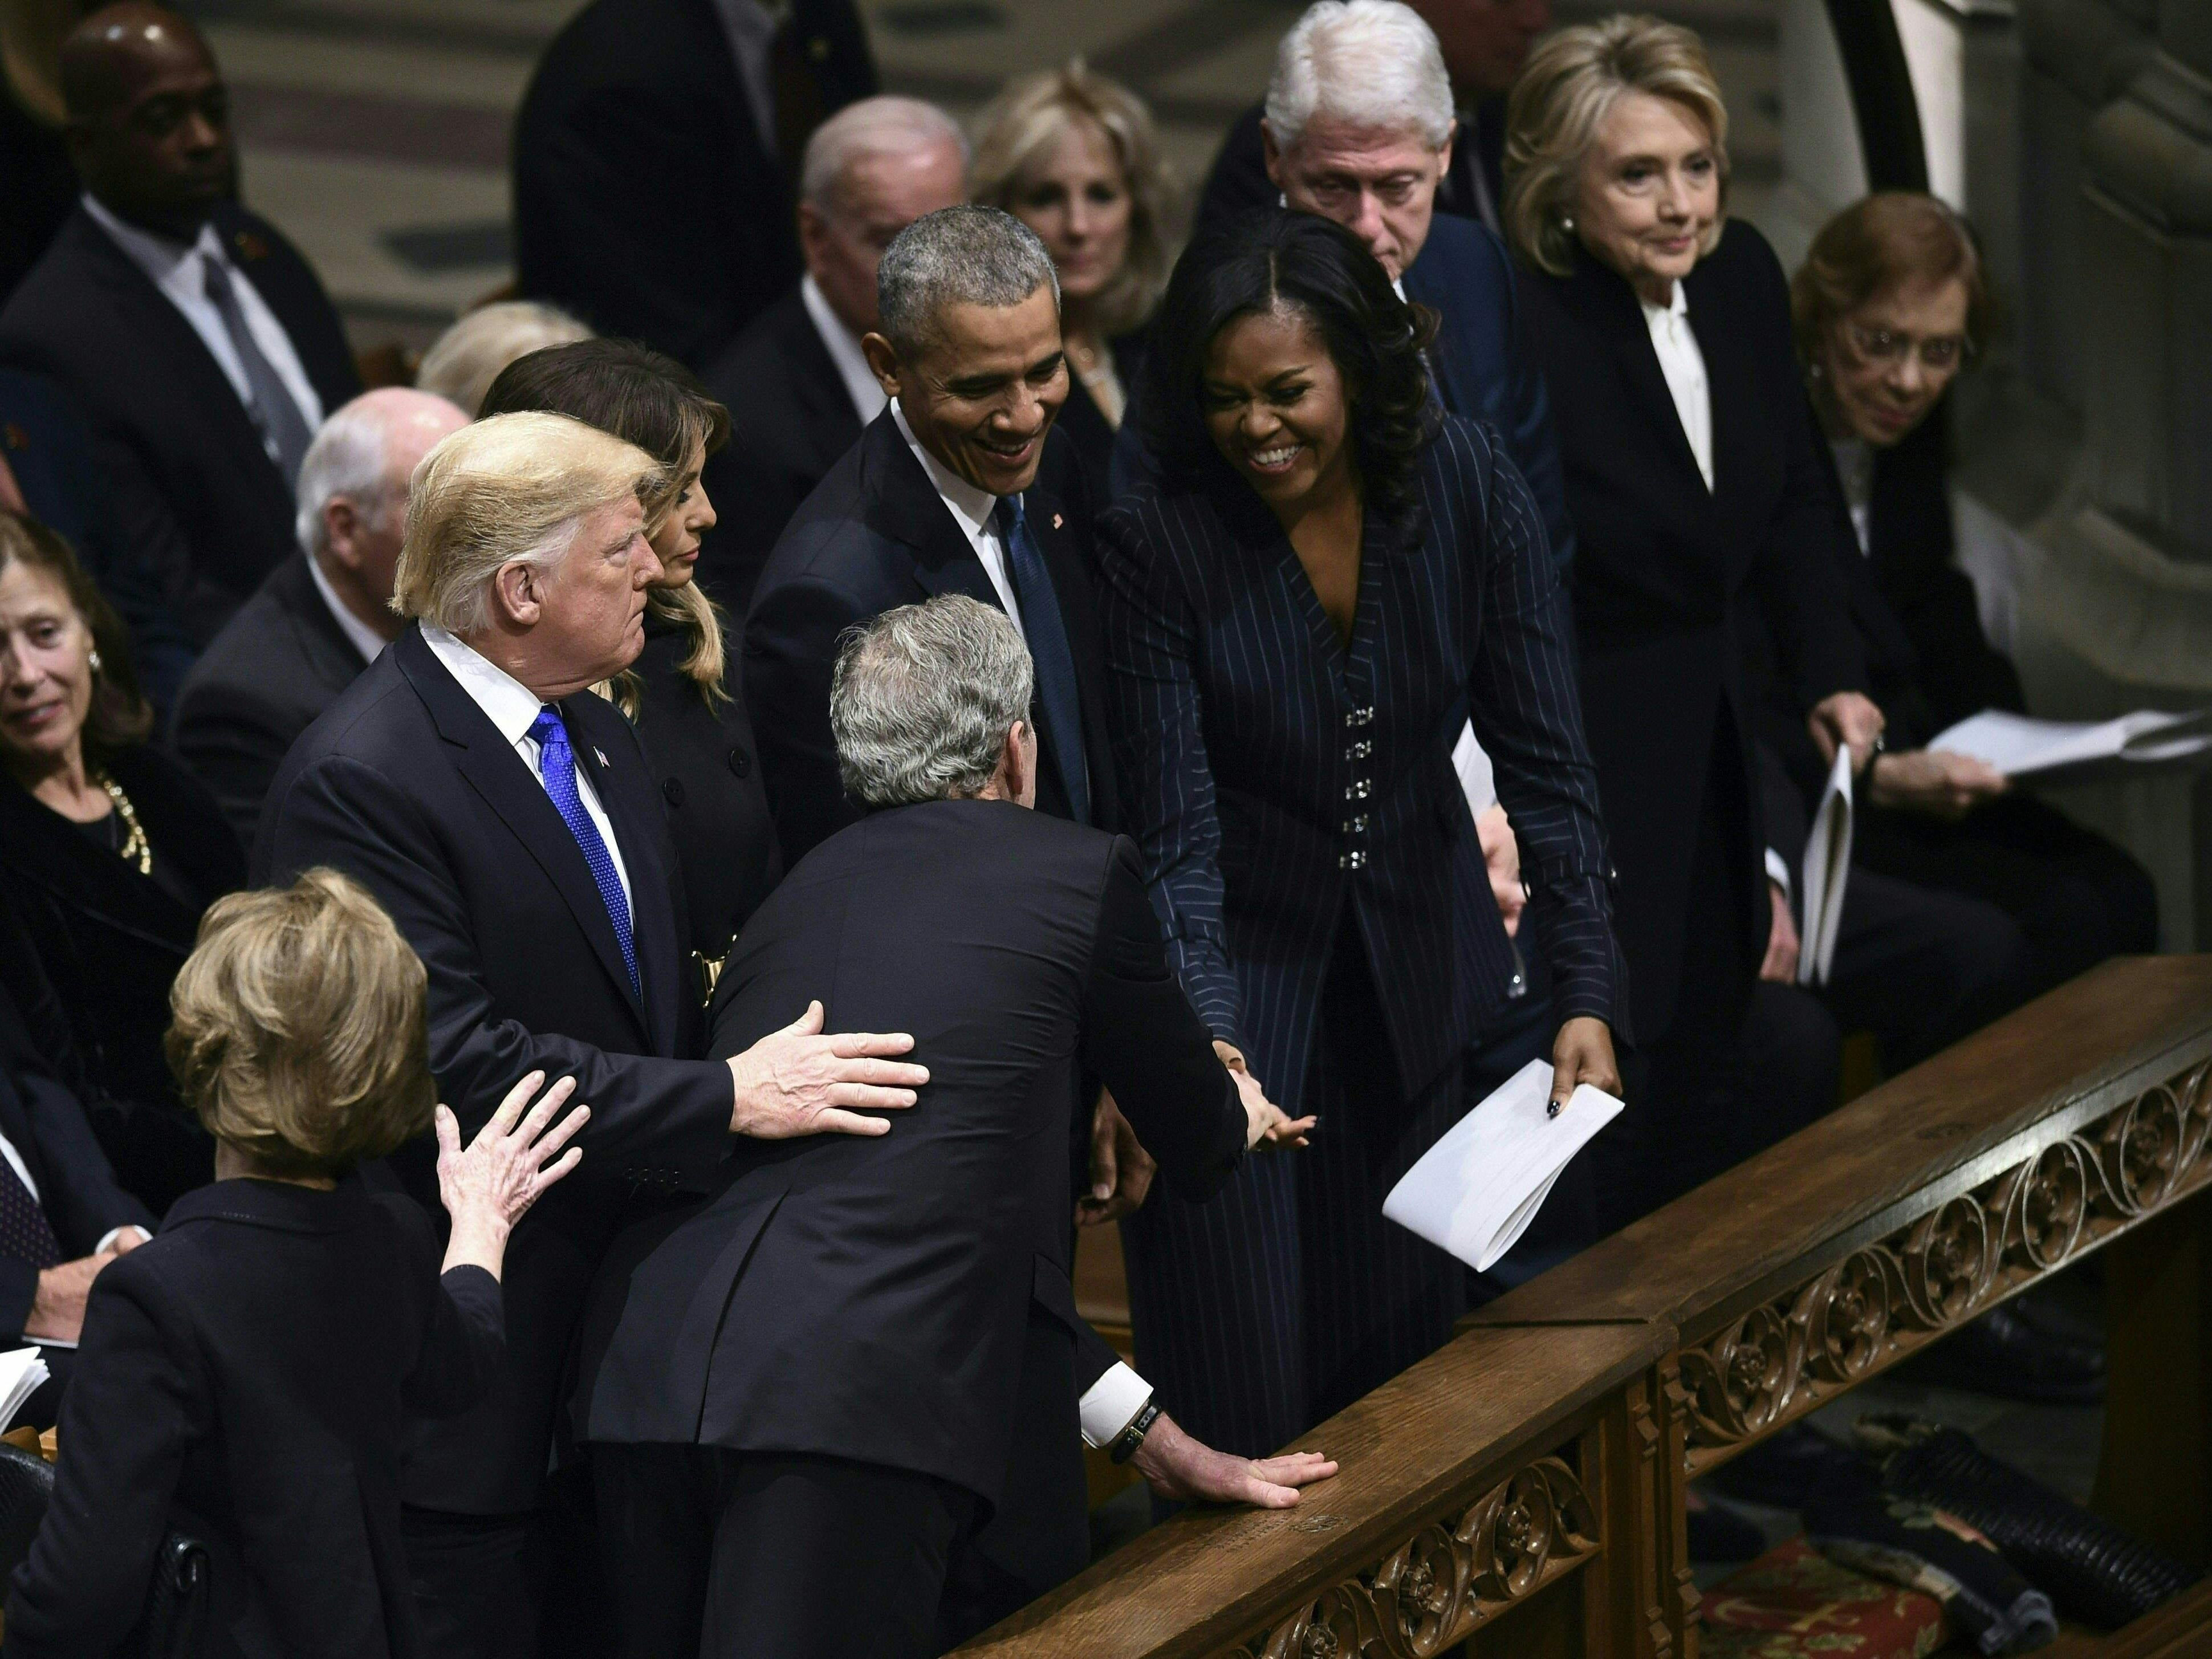 Former president George W. Bush, center, reaches past President Donald Trump, First Lady Melania Trump and former president Barack Obama to greet former first Lady Michelle Obama during the funeral service of former President George H.W. Bush at the National Cathedral in Washington, Dec. 5, 2018.